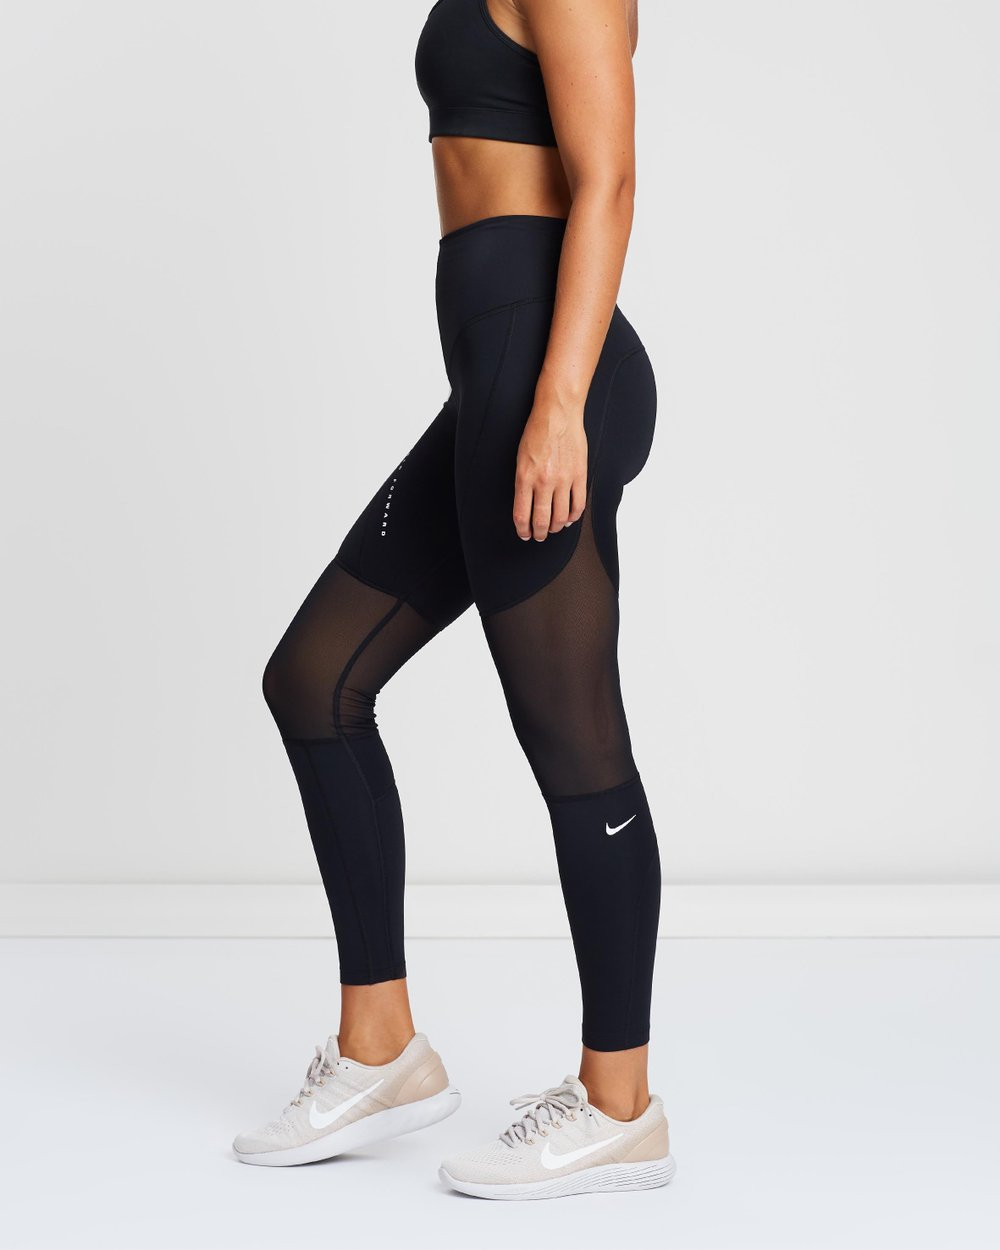 competitive price 46cf4 c8487 Dri-FIT Power Graphic Training Tights by Nike Online   THE ICONIC    Australia